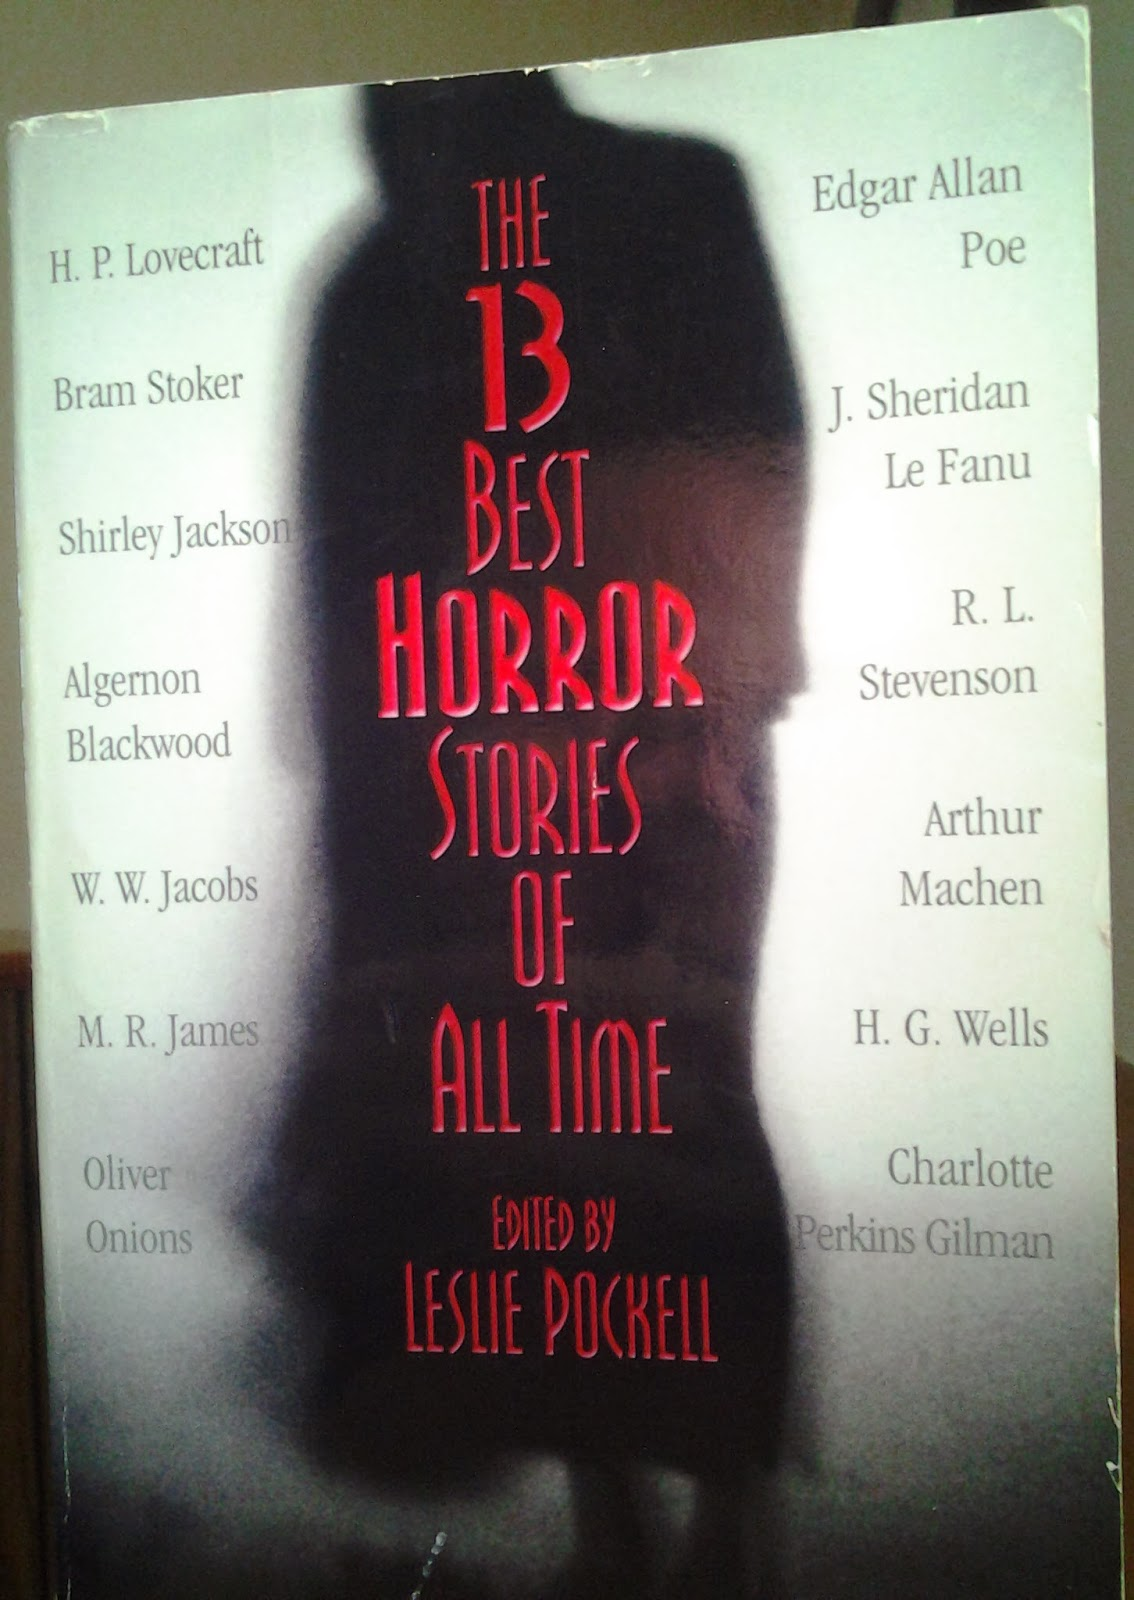 13 Best Horror Stories of All Time - Leslie Puckell